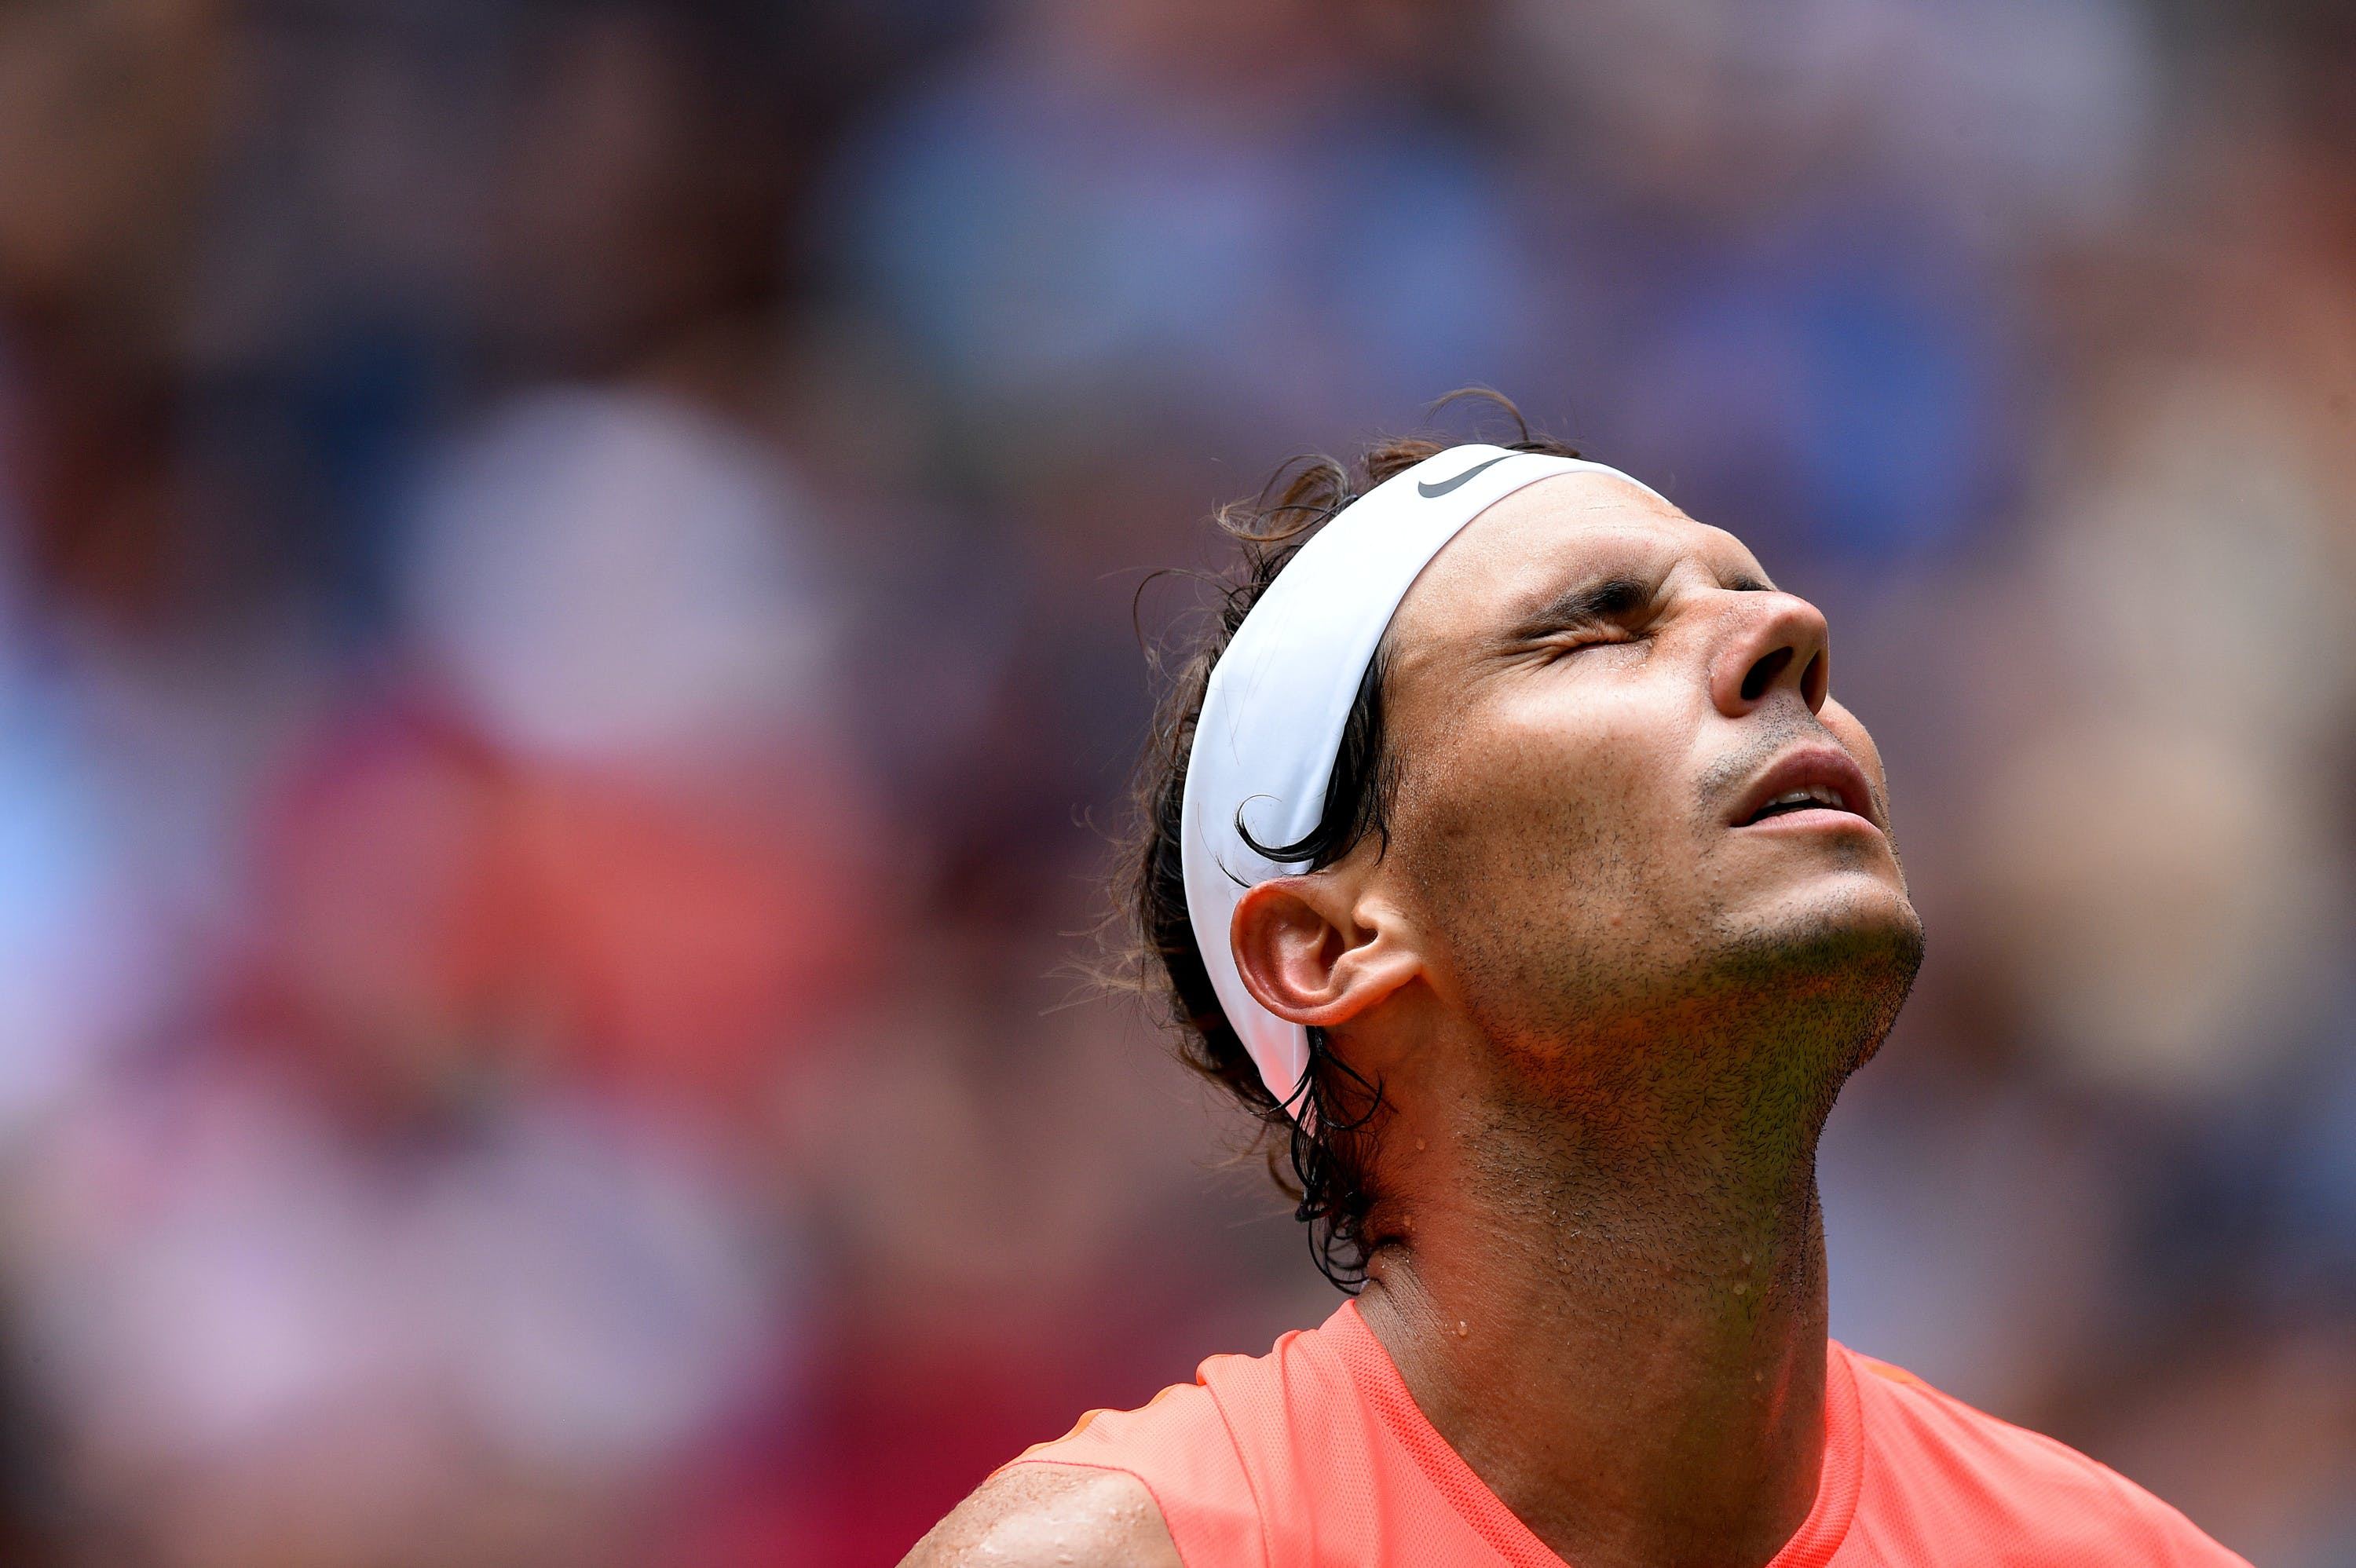 Rafael Nadal closes his eyes during the 2018 US Open